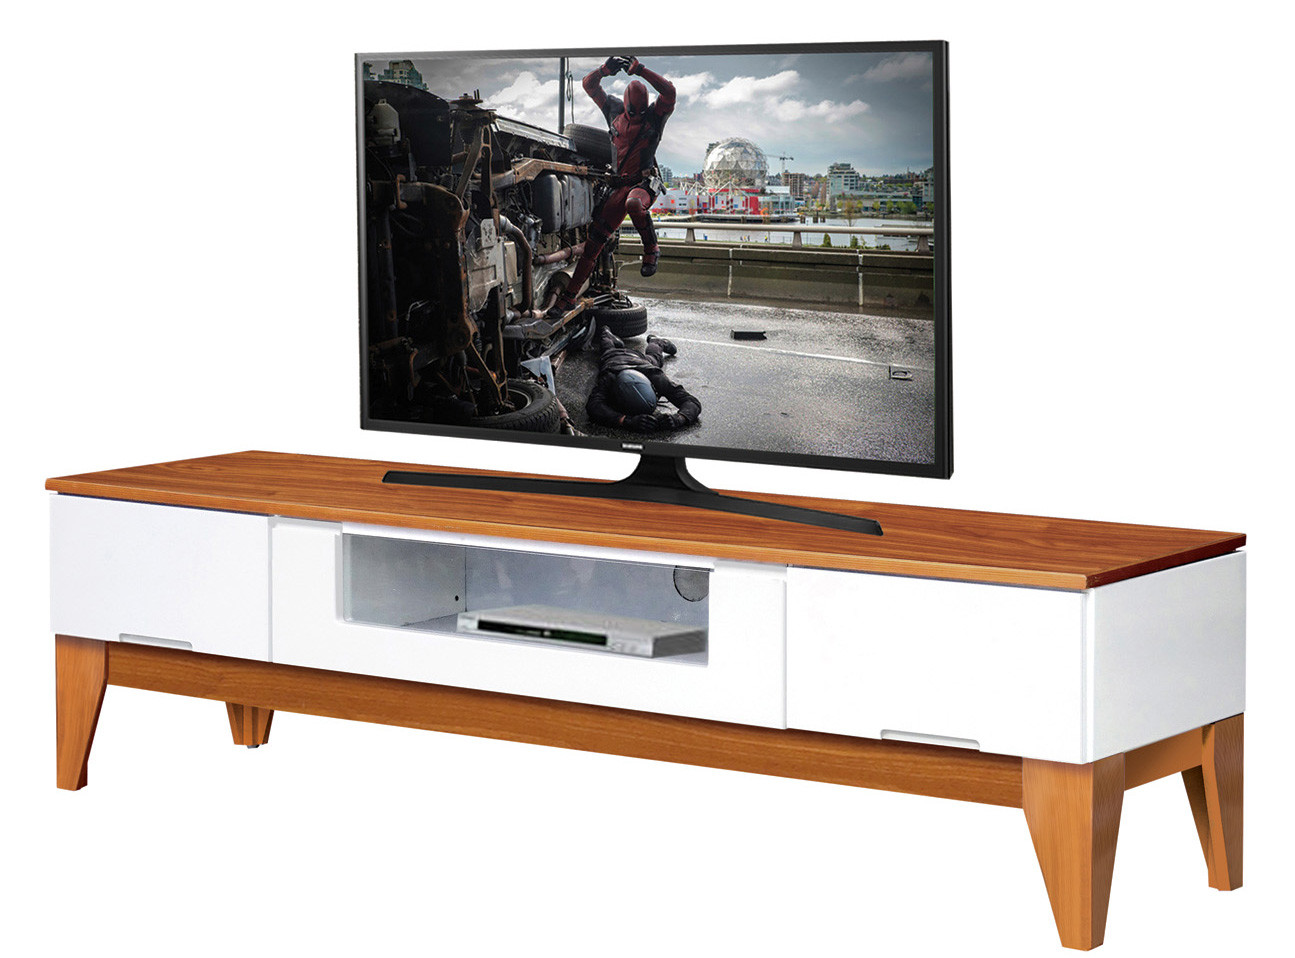 rona tv console furniture amp home d cor fortytwo